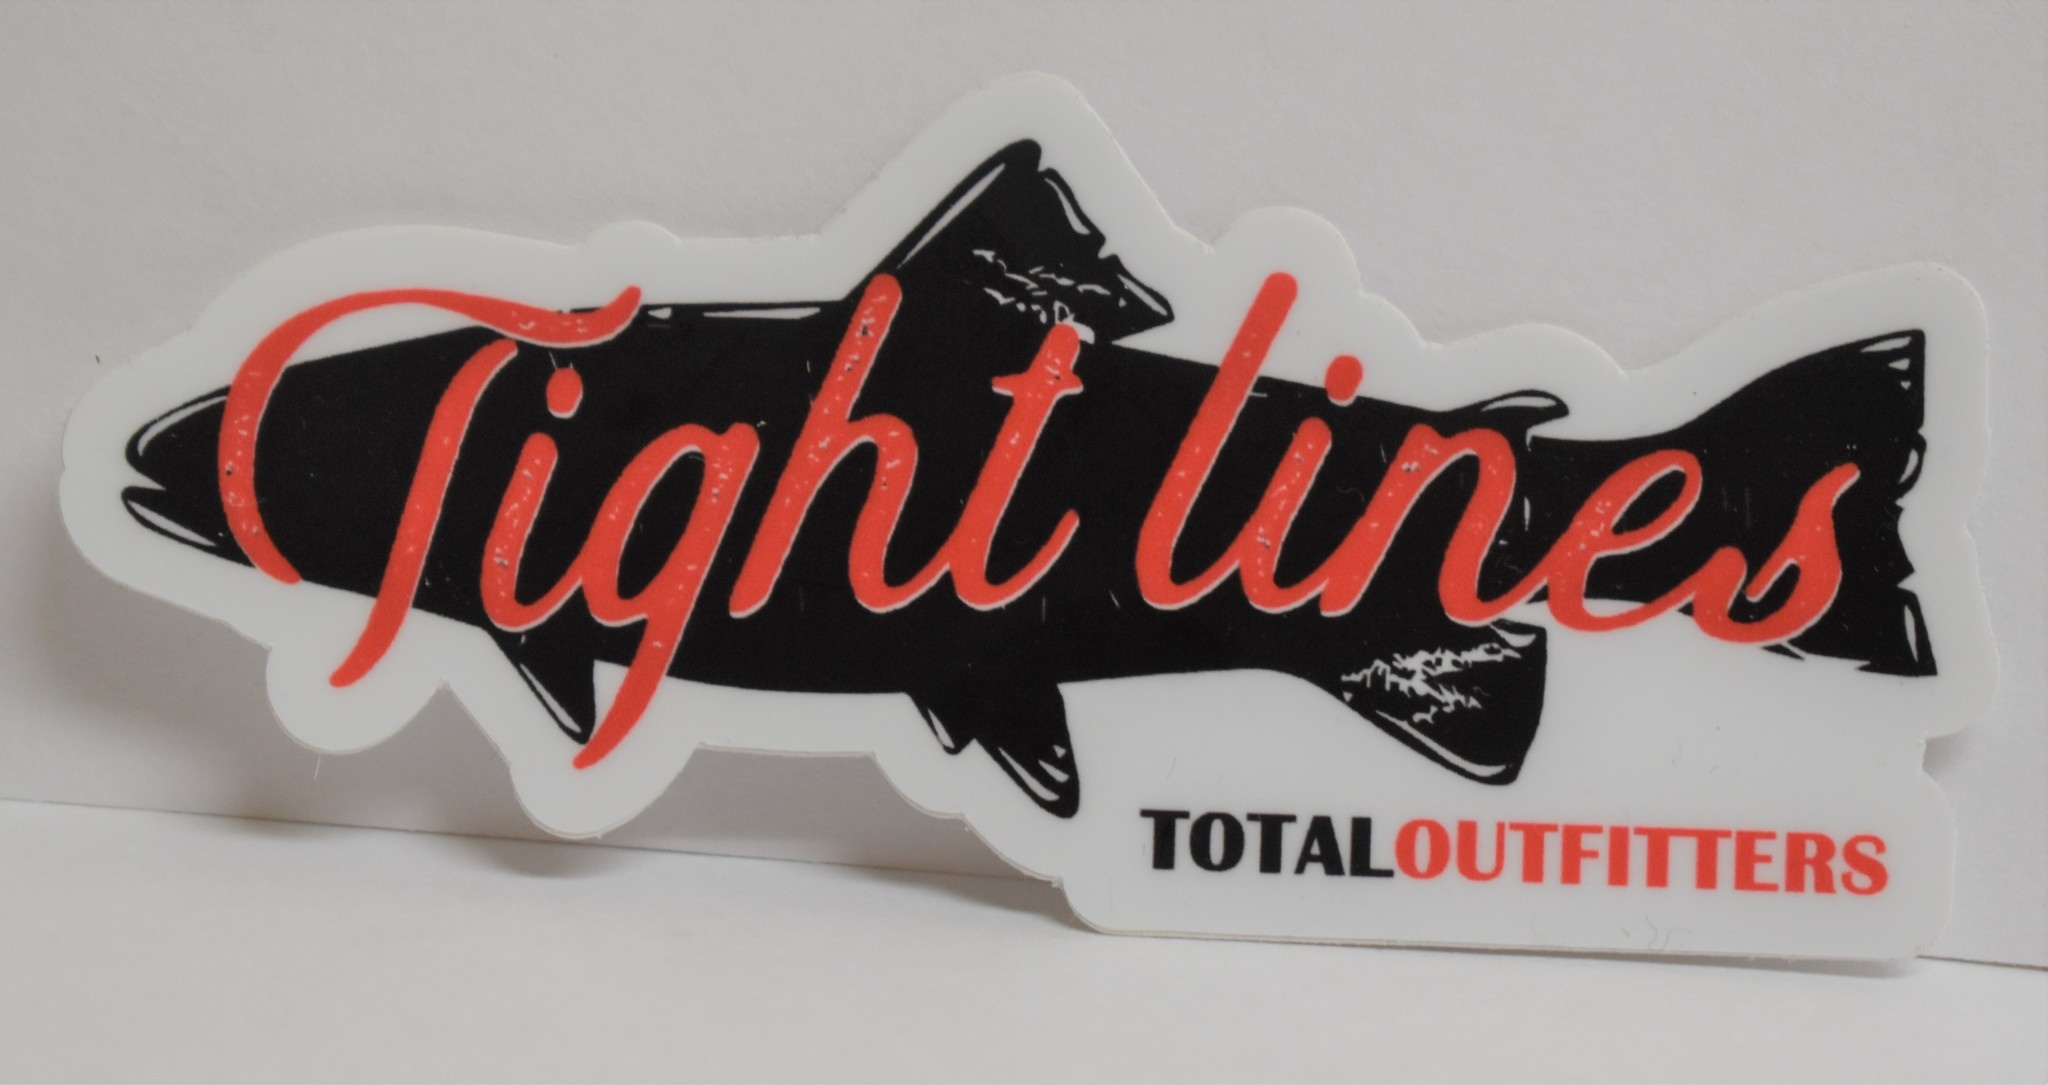 TOTAL OUTFITTERS TIGHT LINES STICKER